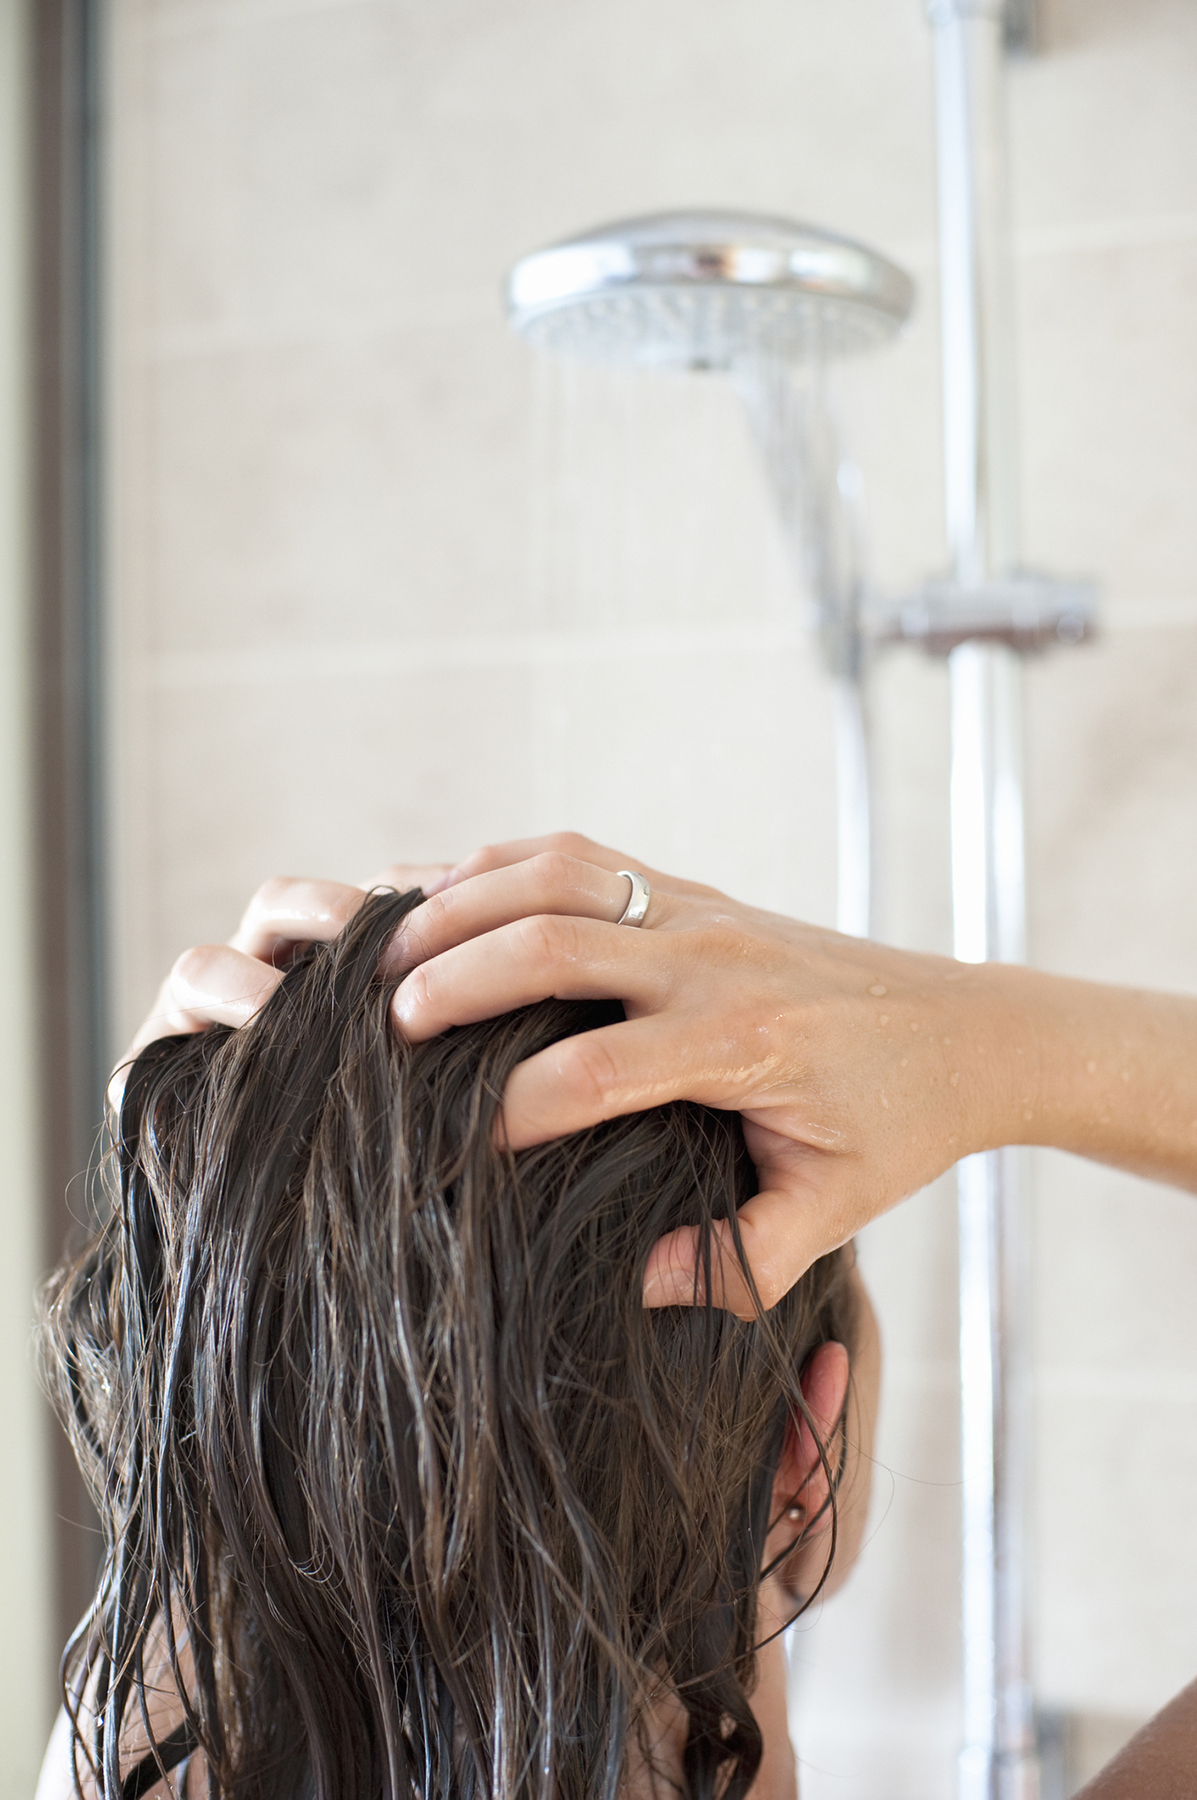 home hair styling ideas real simple home decor ideas recipes diy amp tips 7098 | woman rinsing hair 0